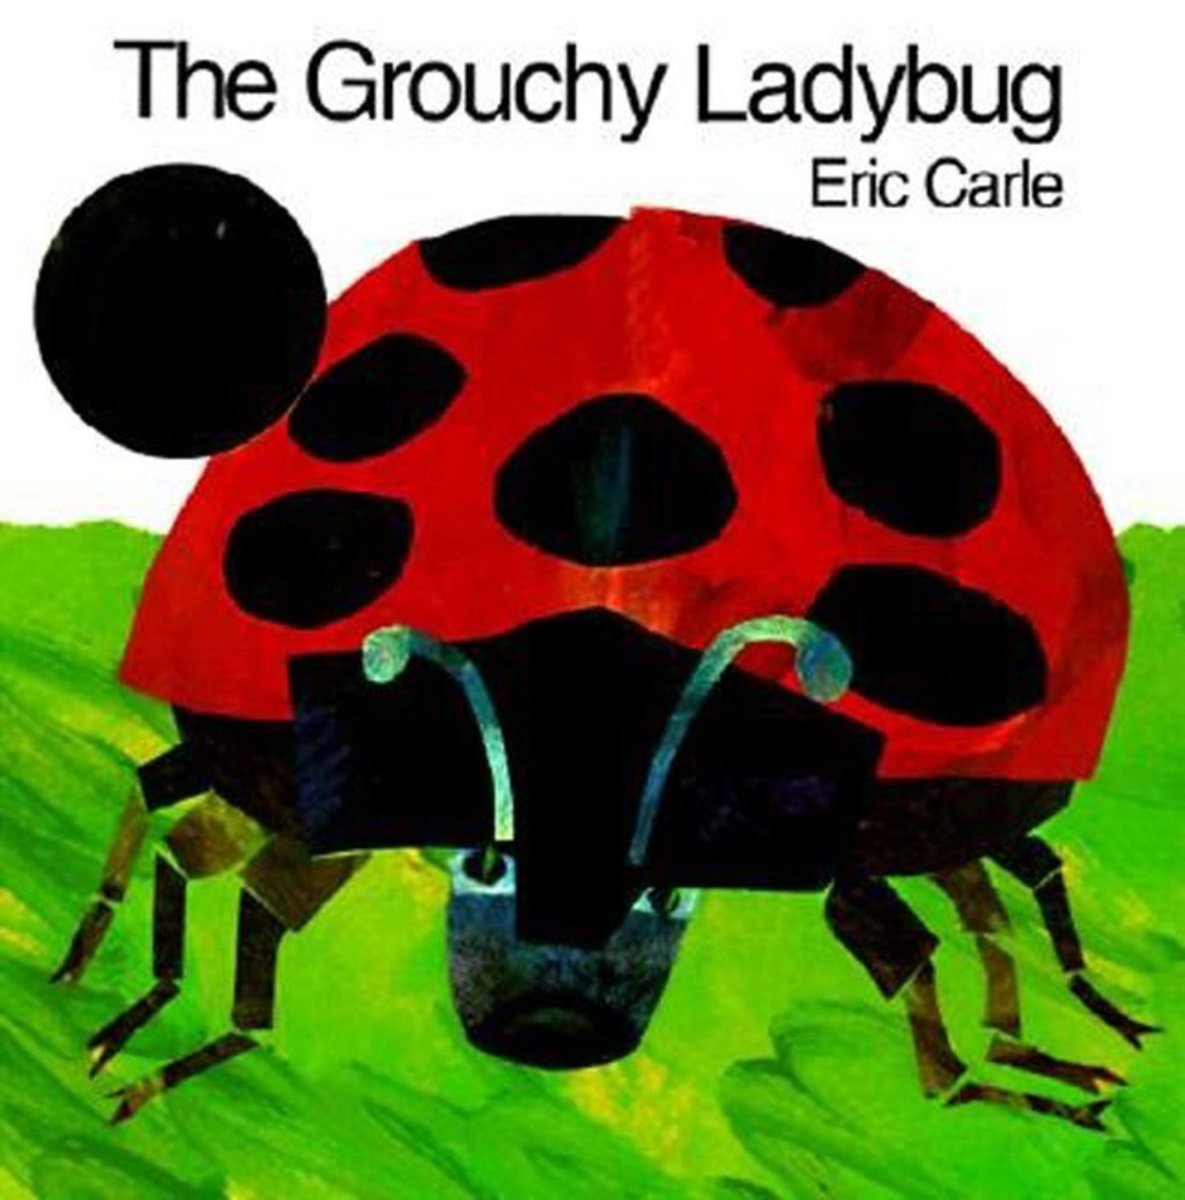 The Grouchy Ladybug By Eric Carle Children S Book Review